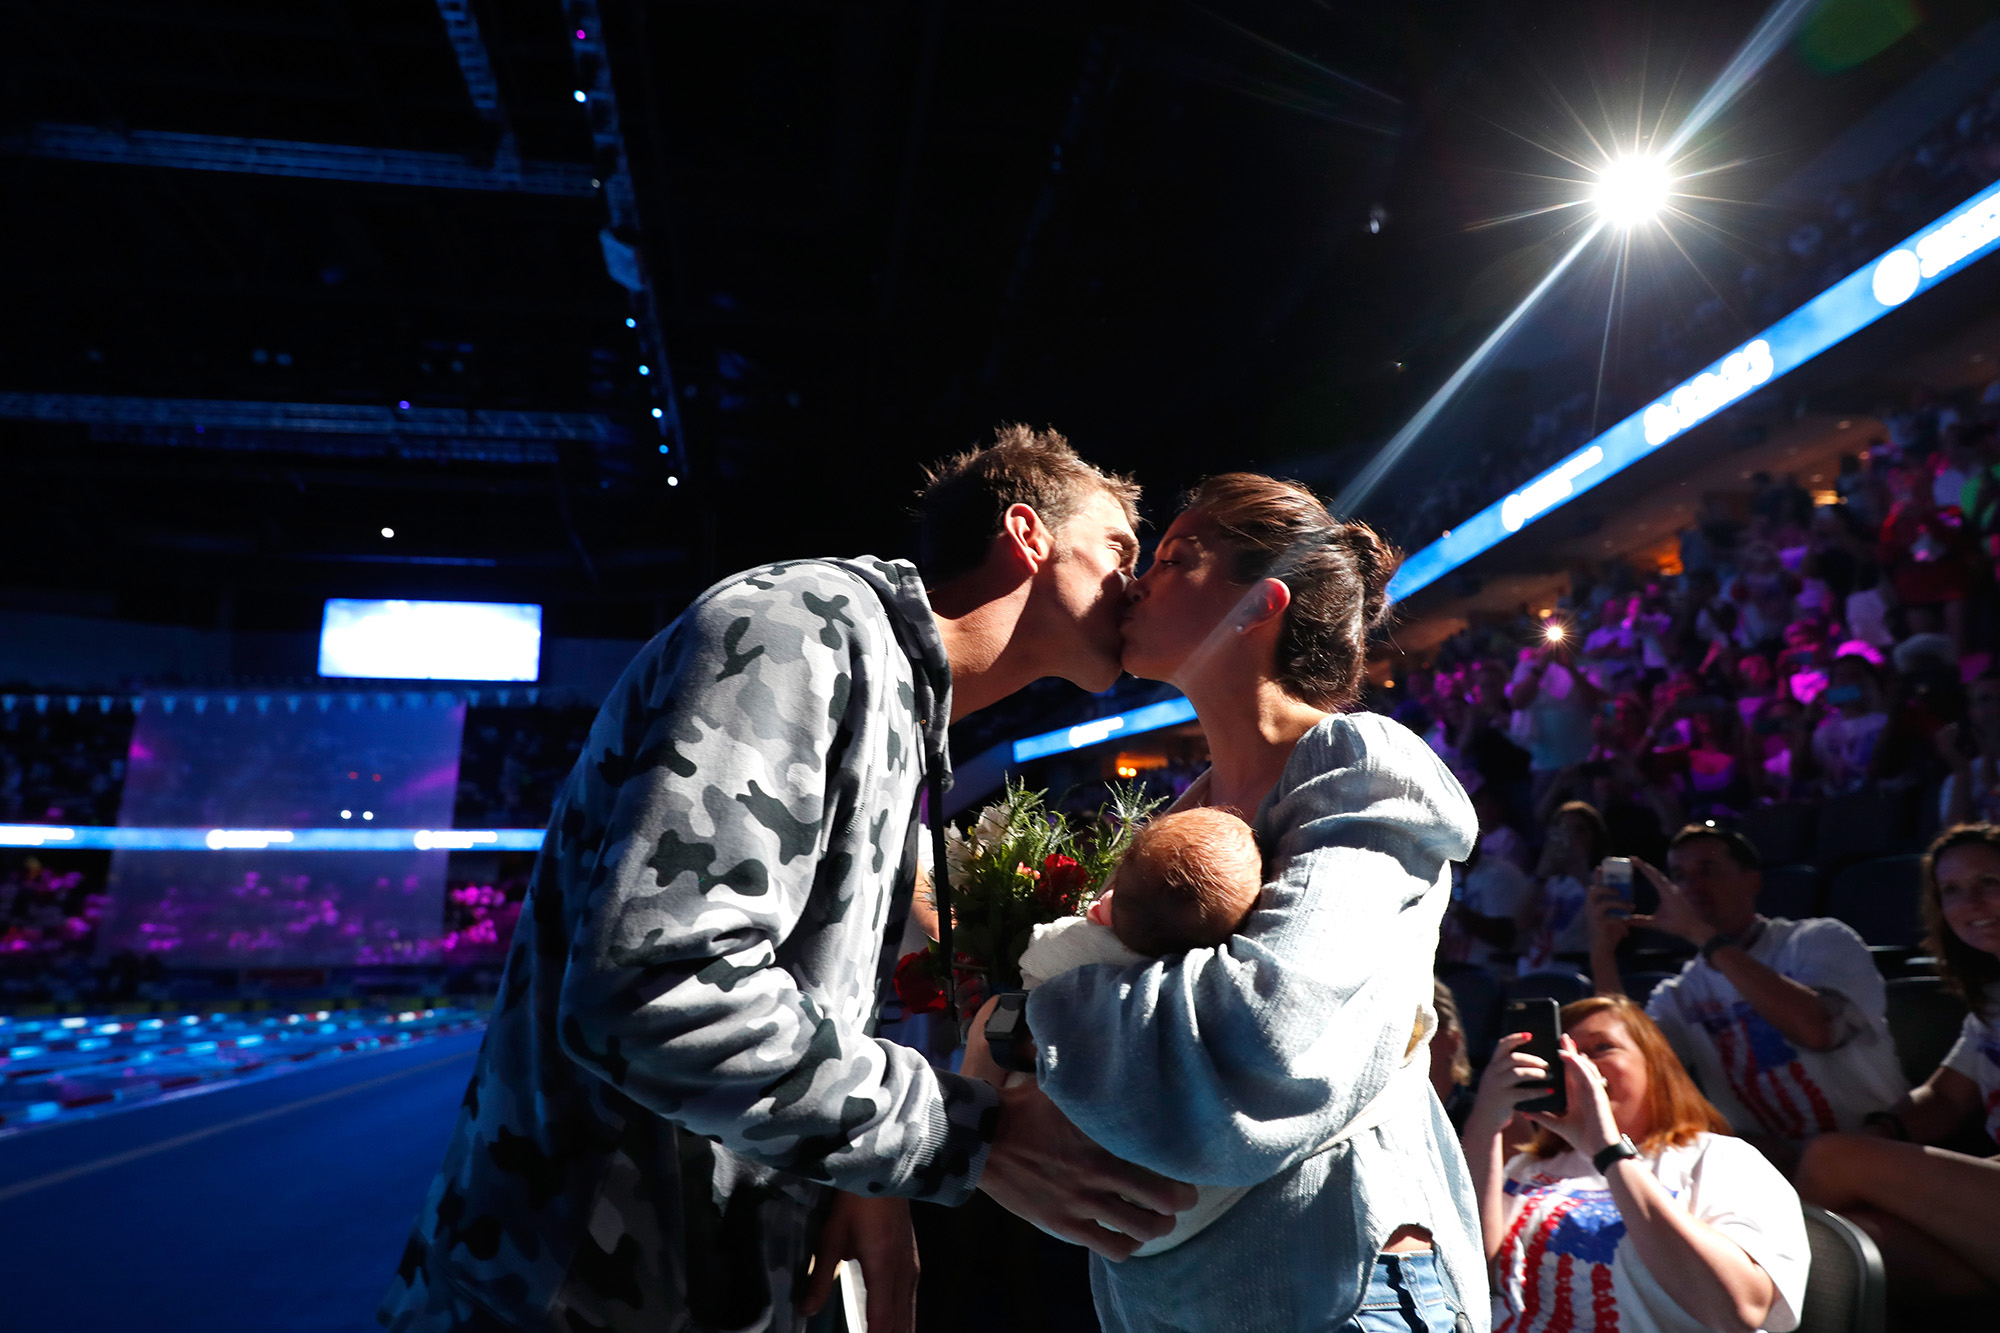 Michael Phelps of the United States celebrates with his fiancee Nicole Johnson and their son Boomer after finishing first in the final heat for the Men's 200 Meter Individual Medley during Day Six of the 2016 U.S. Olympic Team Swimming Trials at CenturyLink Center on July 1, 2016 in Omaha, Nebraska.  (Photo by Al Bello/Getty Images)